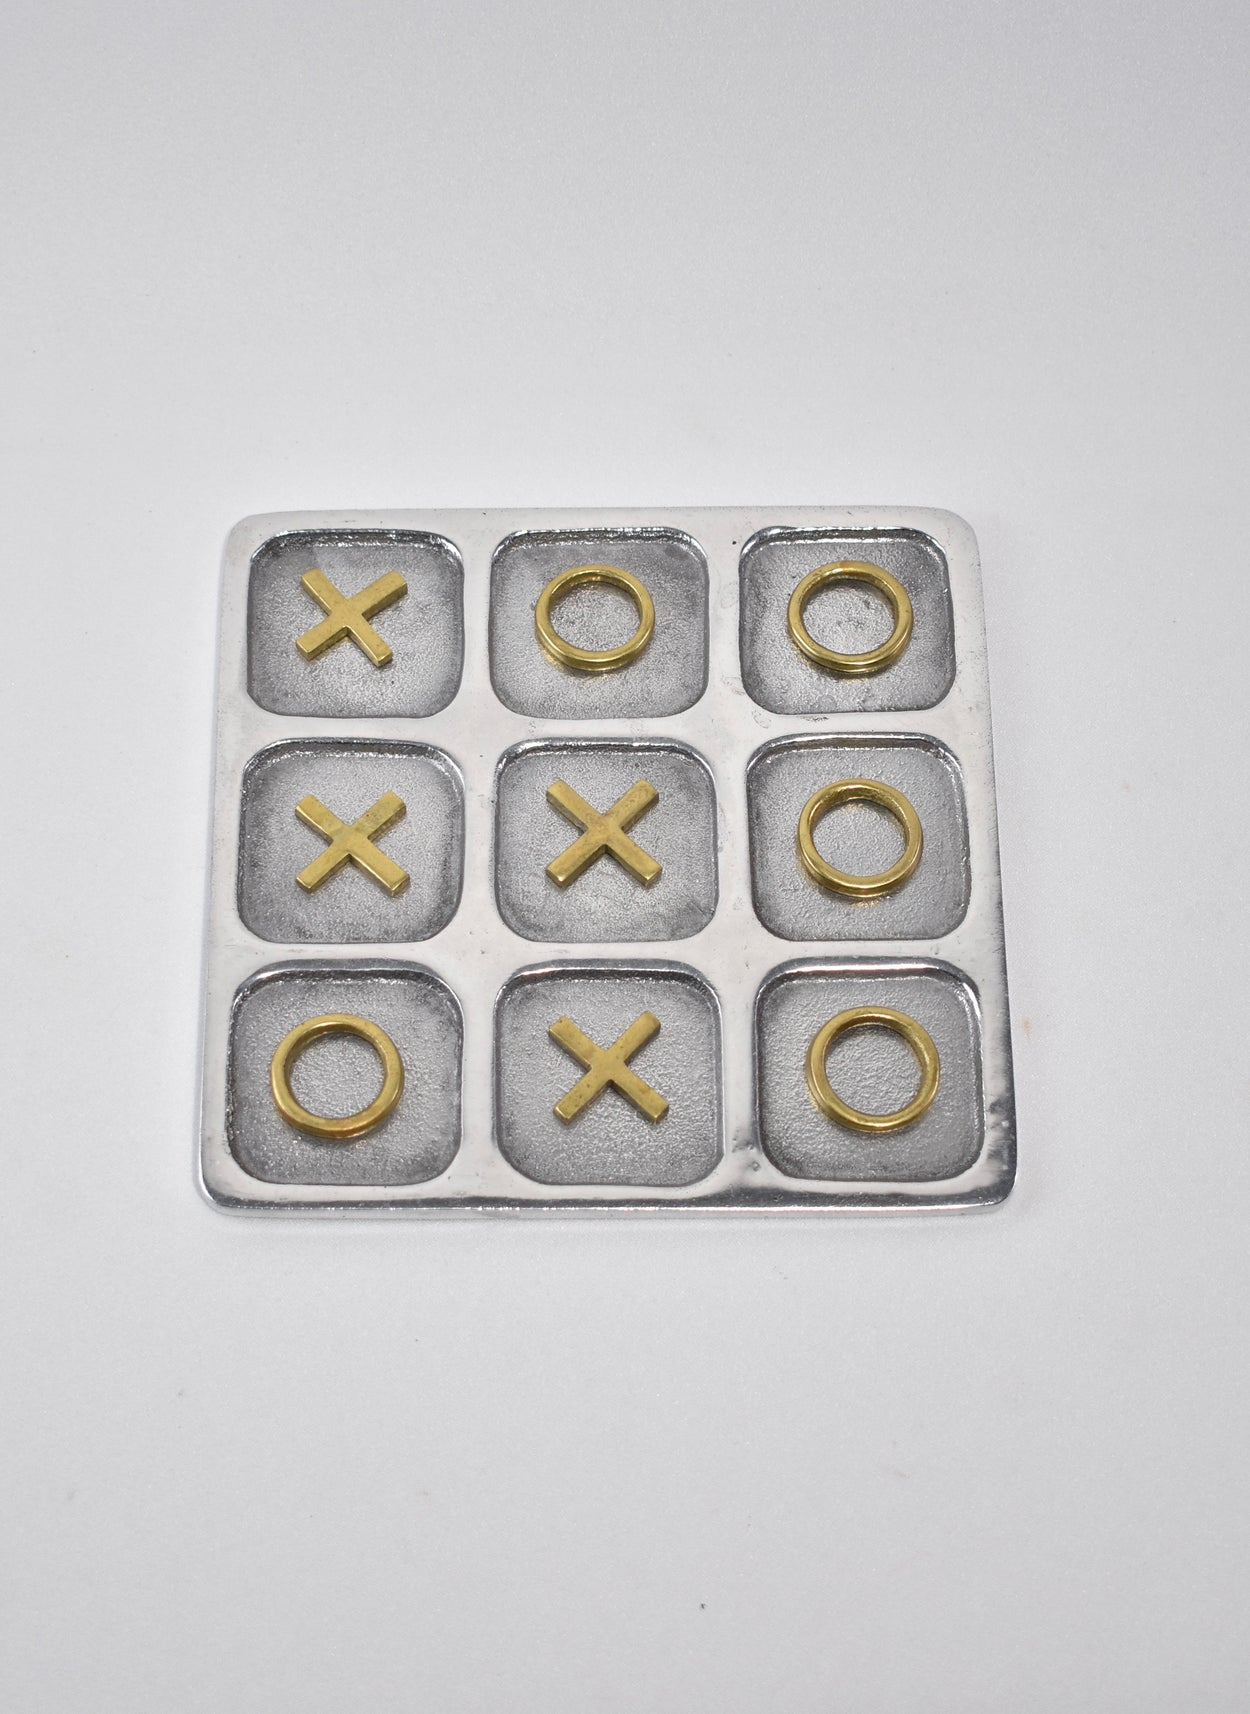 Tic-Tac-Toe Set